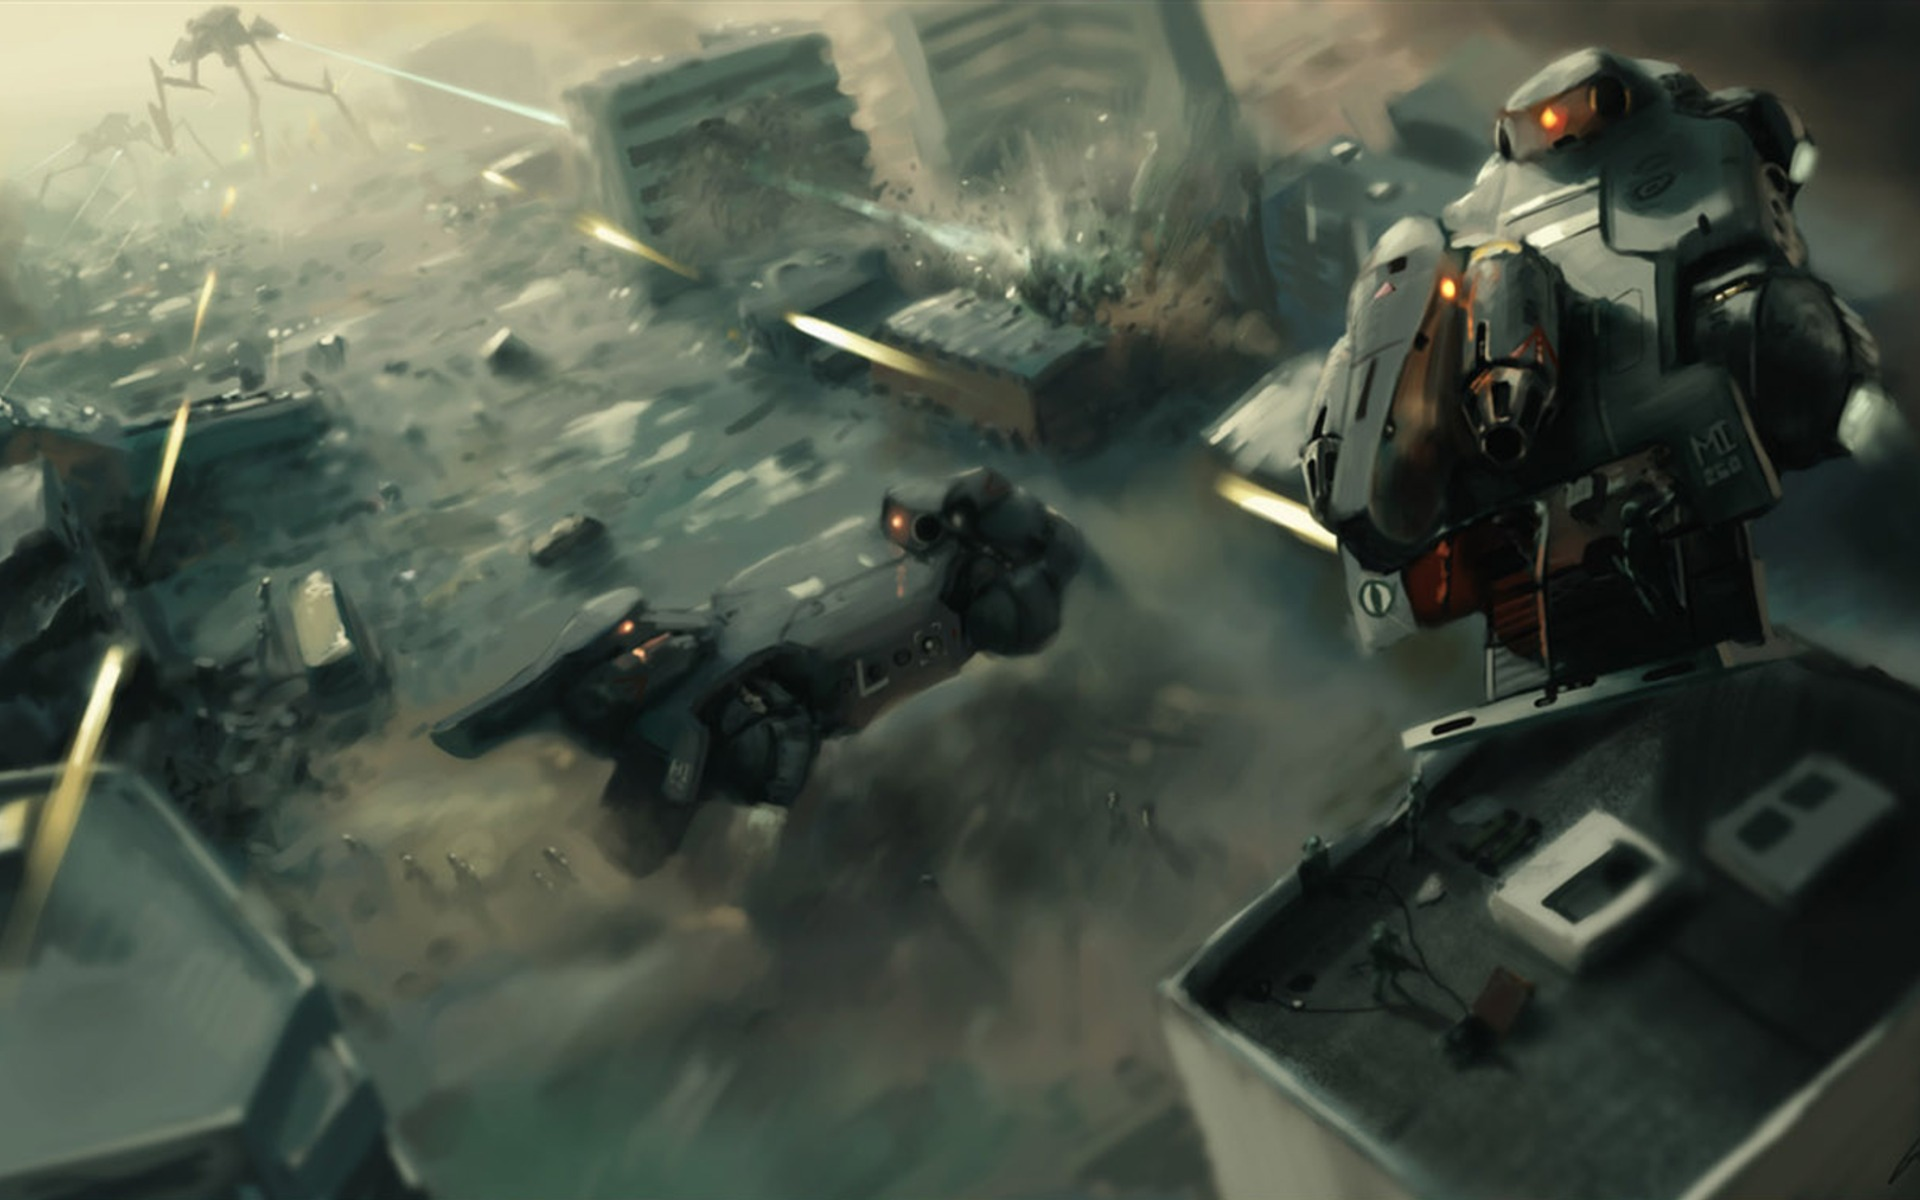 killzone warriors soldiers battles people games video-games weapons guns